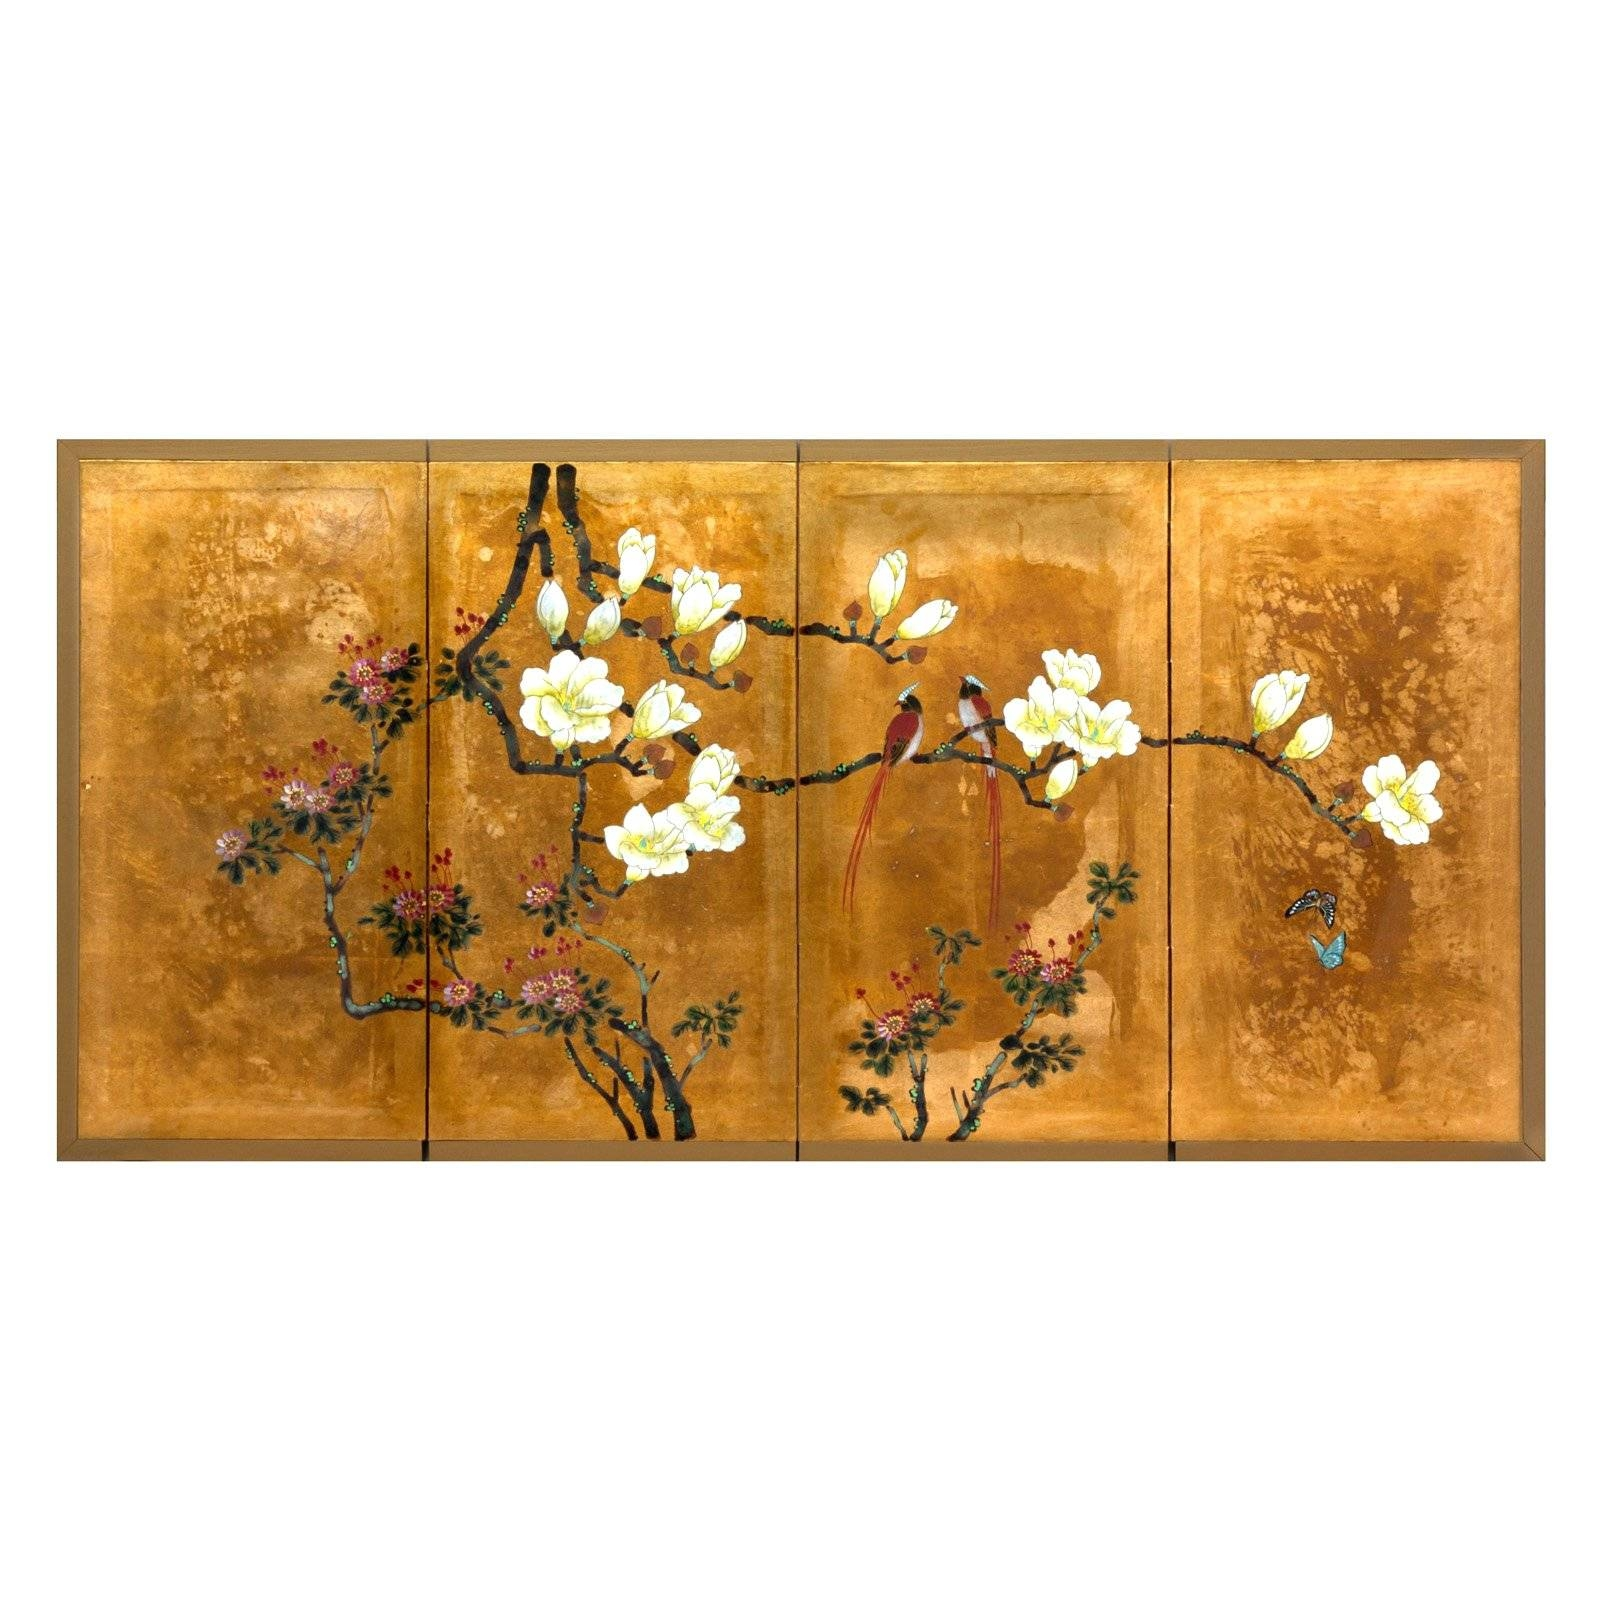 3D Wall Art Panels South Africa Tag: 3 D Wall Art. With Regard To 2018 Oriental Metal Wall Art (Gallery 8 of 20)